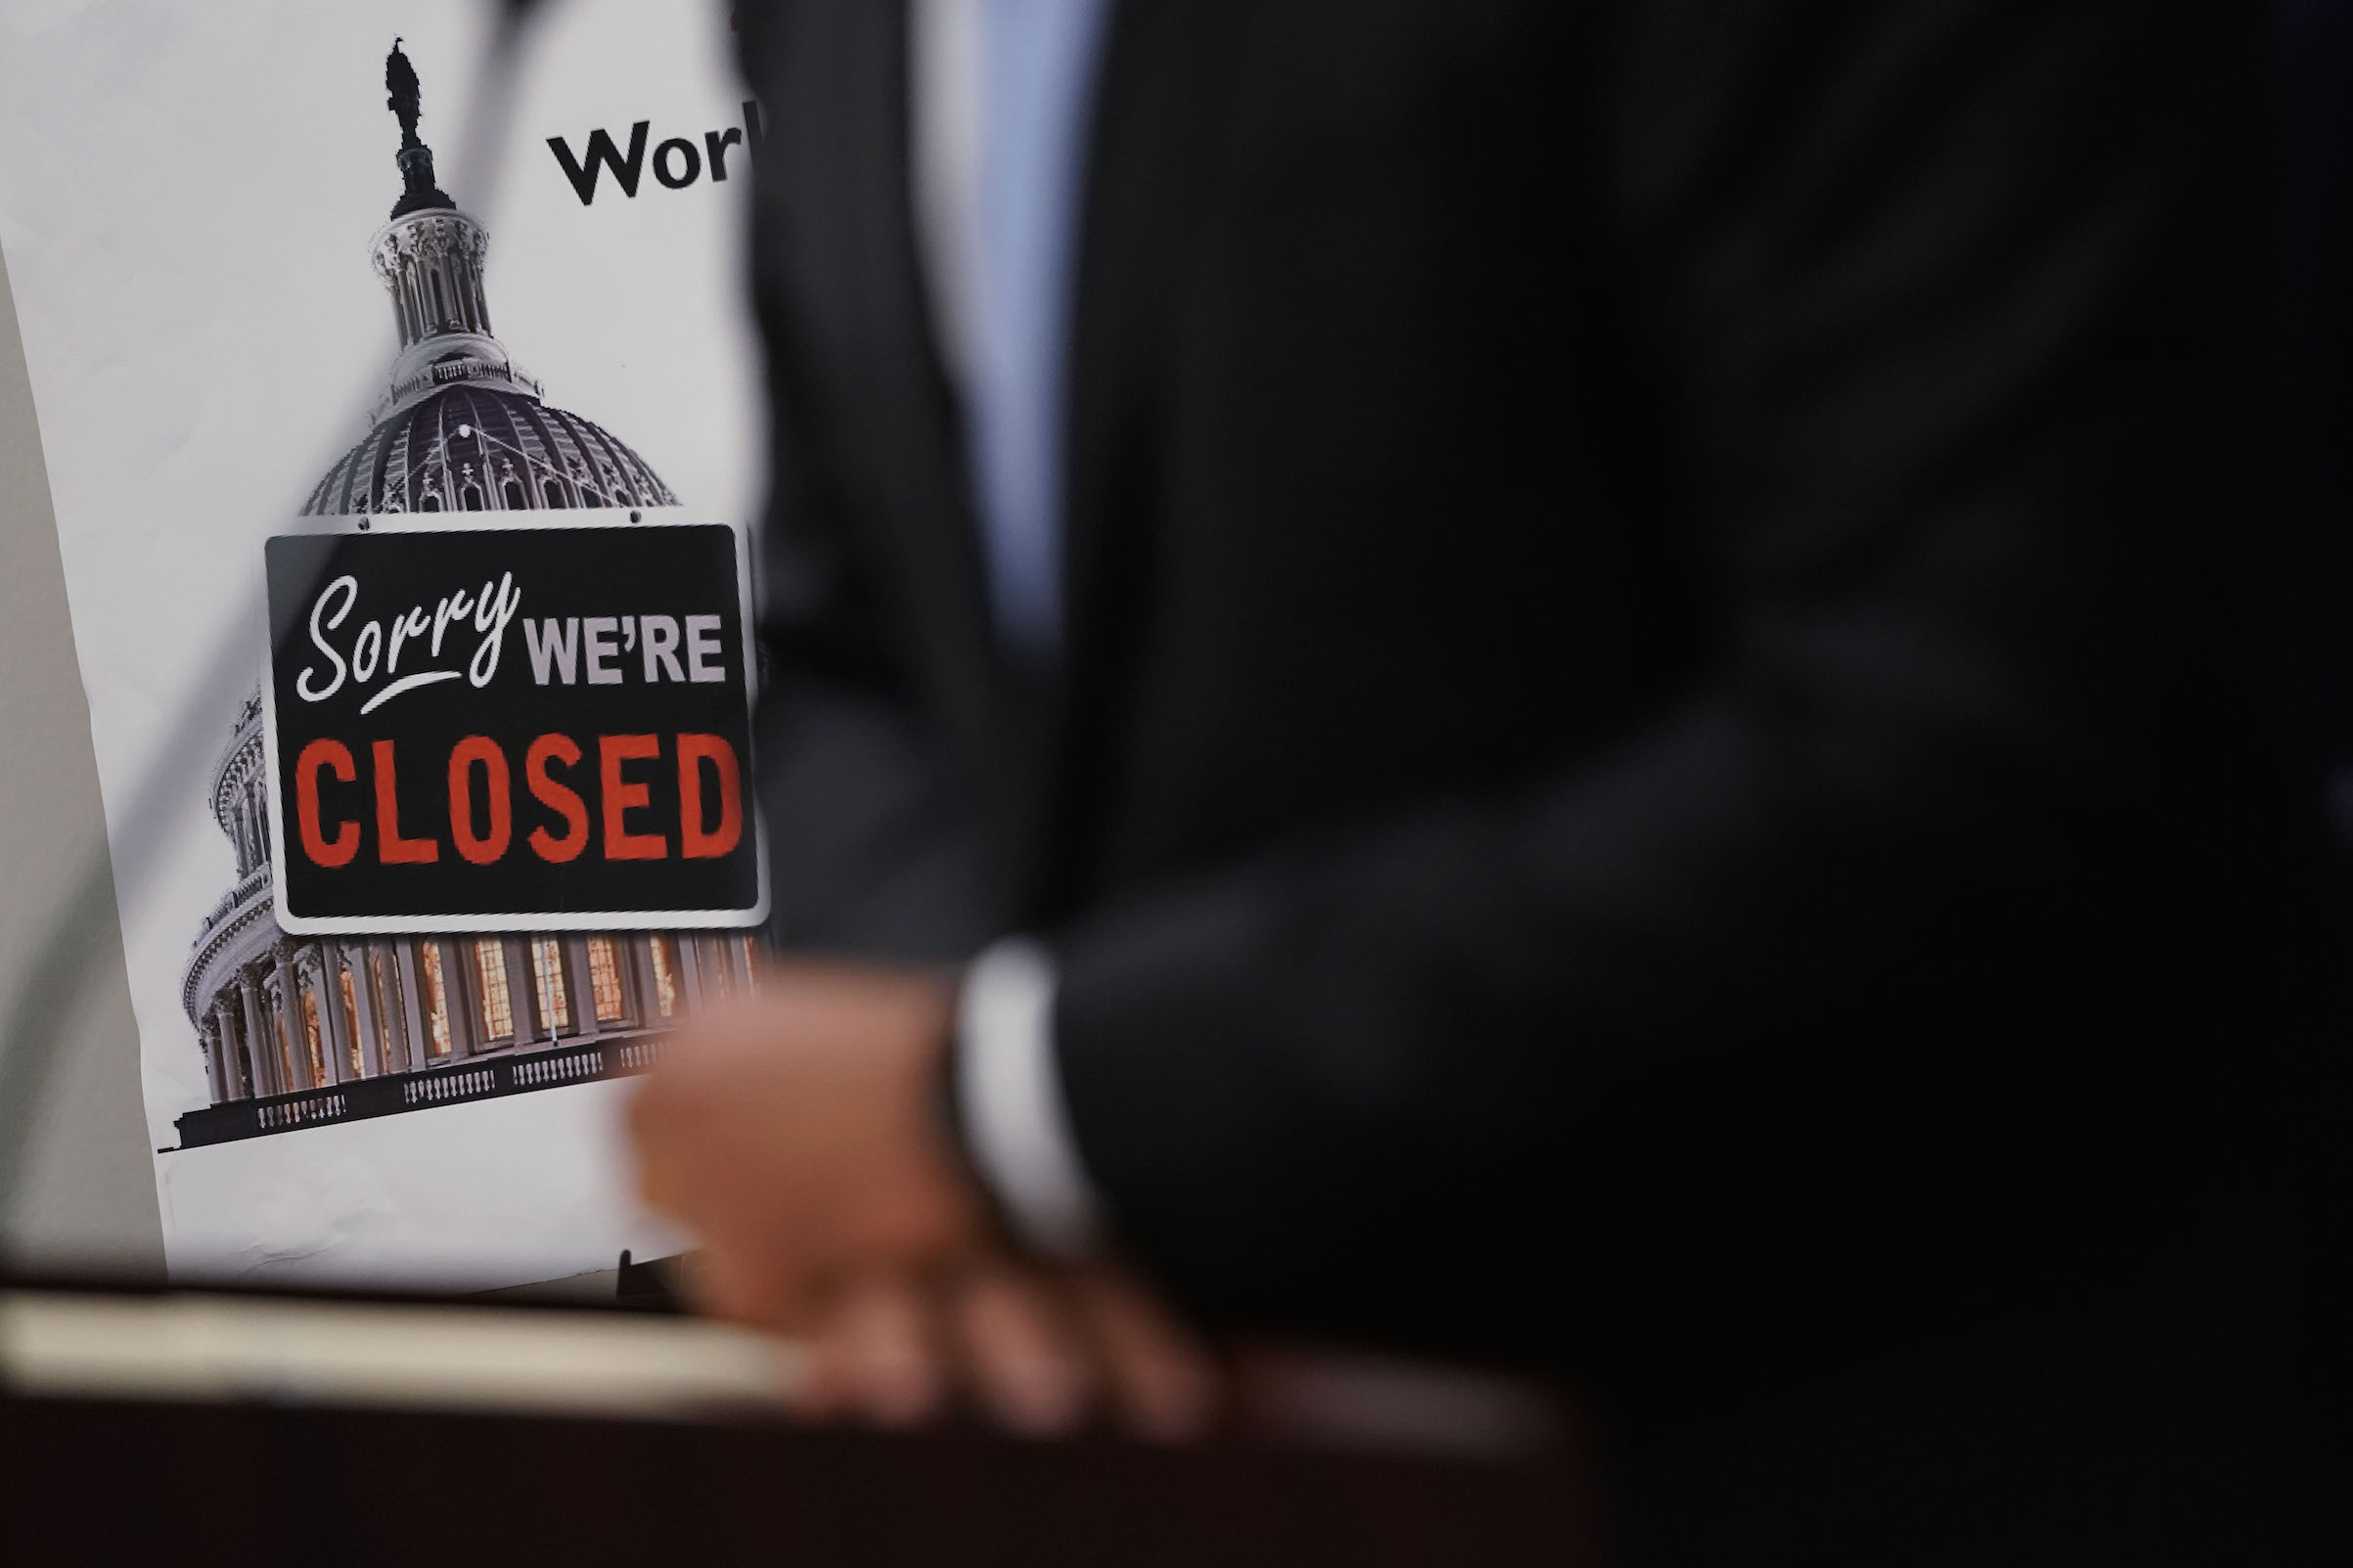 A  Closed  sign is seen during a news conference after a House Democratic Caucus meeting at the U.S. Capitol Jan. 9, 2019 in Washington, DC.